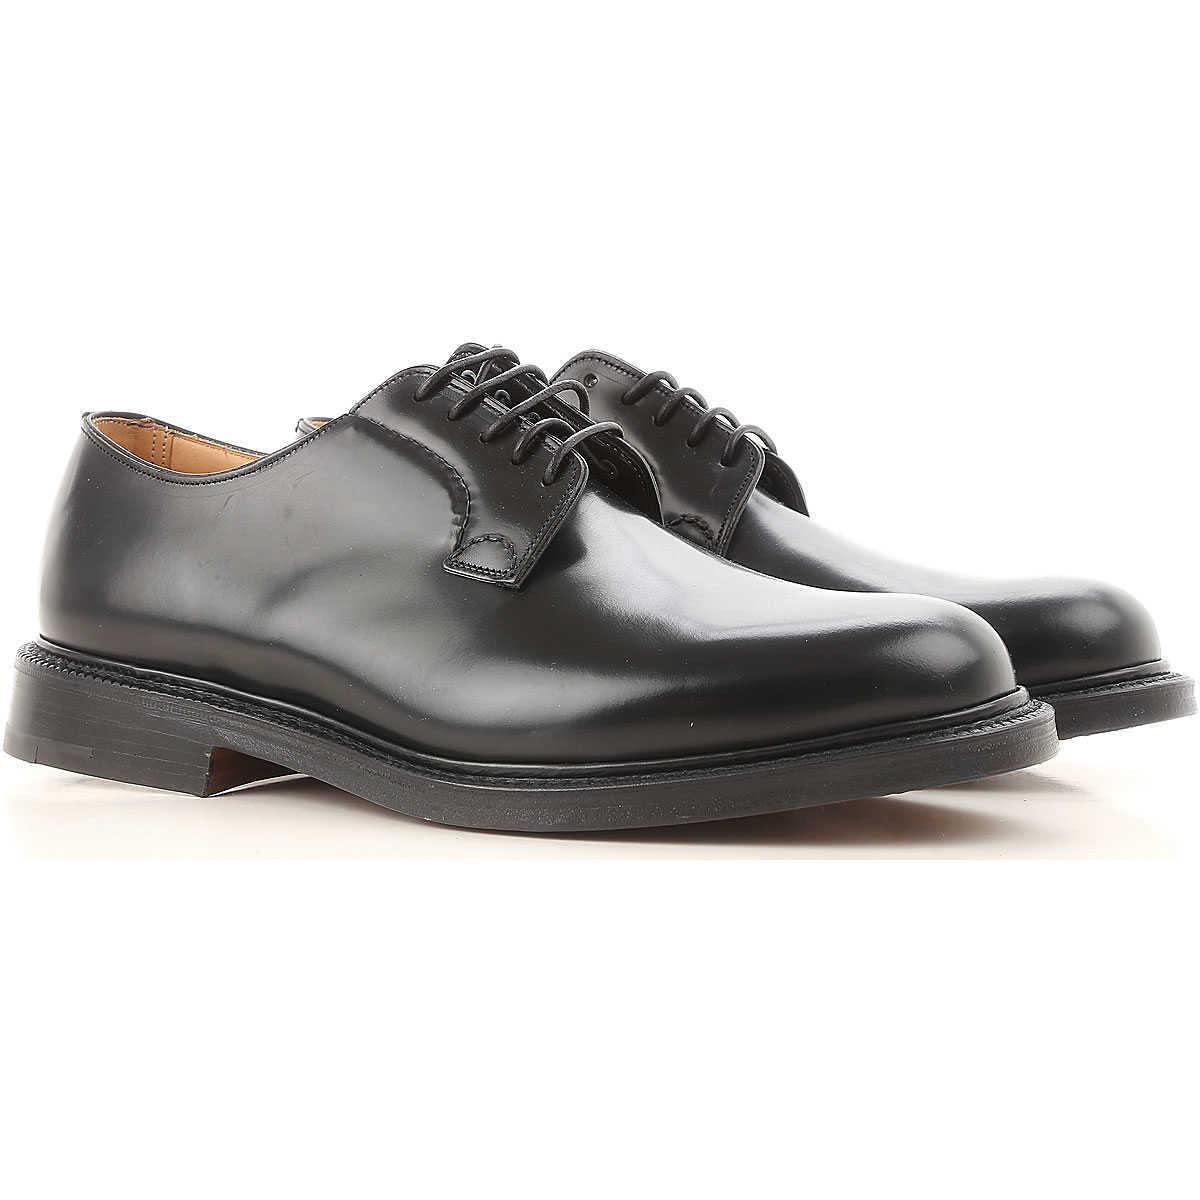 Church's Lace Up Shoes for Men Oxfords Derbies and Brogues On Sale - GOOFASH